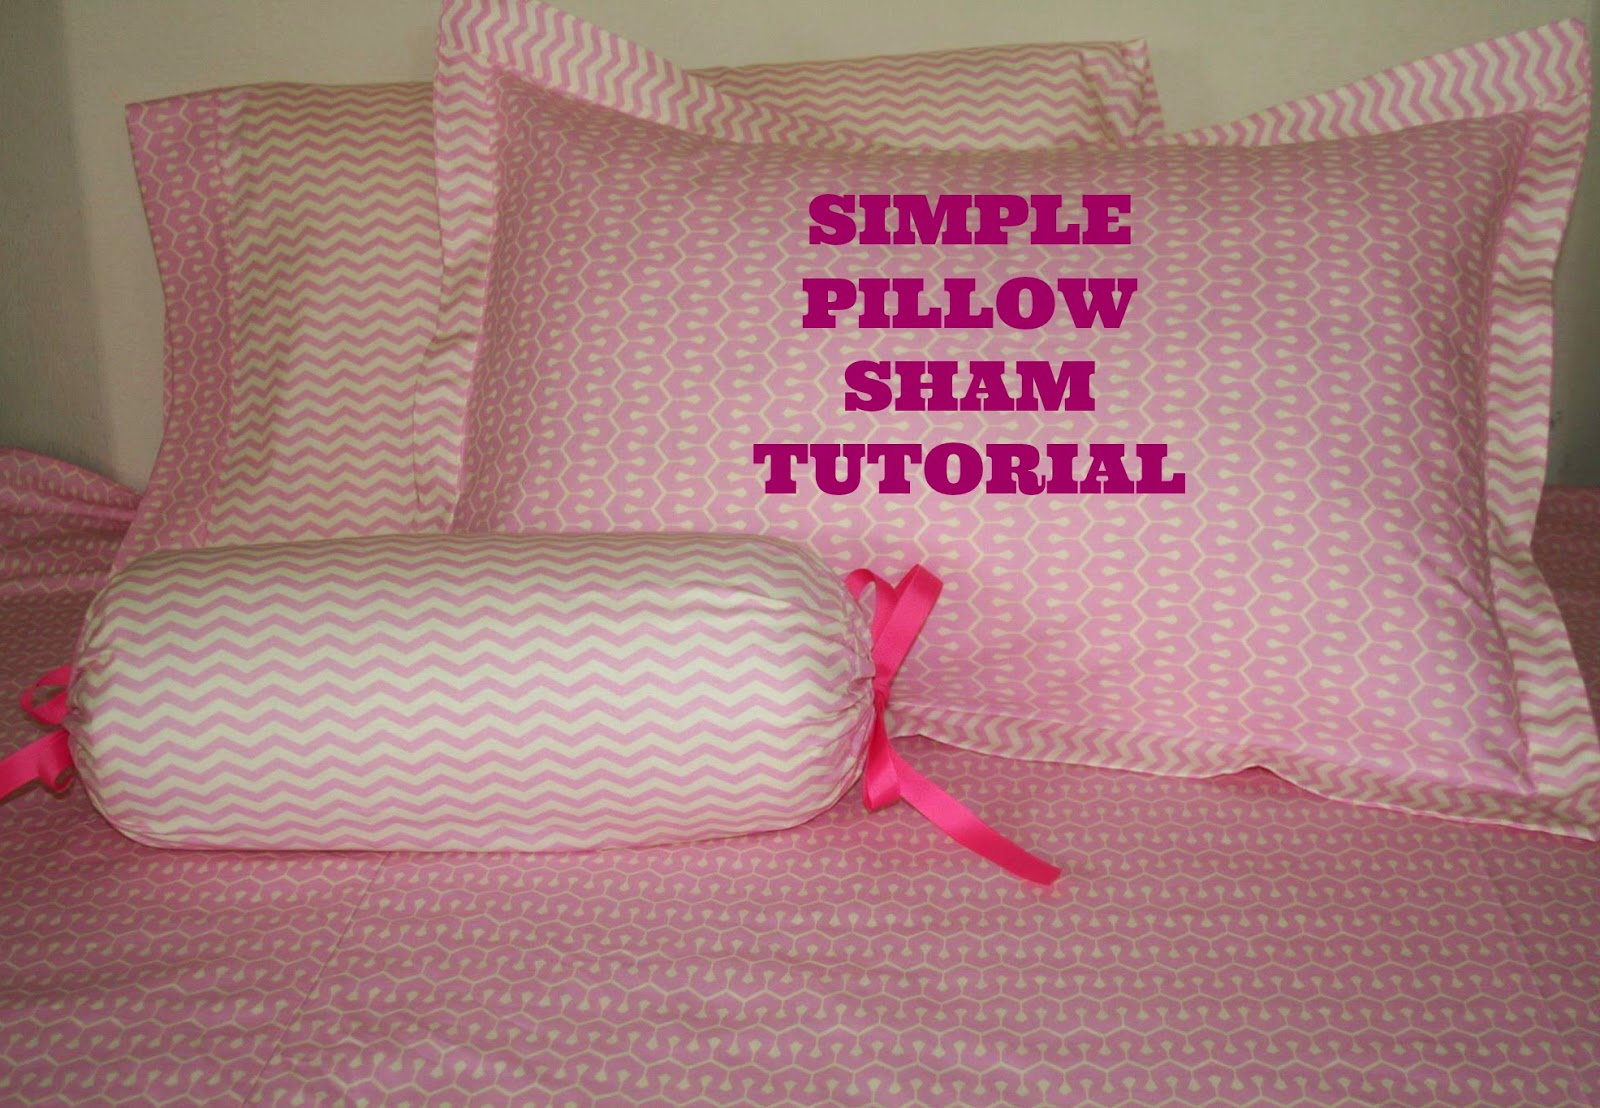 glam fabrics simple pillow sham tutorial for standard and king pillows. Black Bedroom Furniture Sets. Home Design Ideas